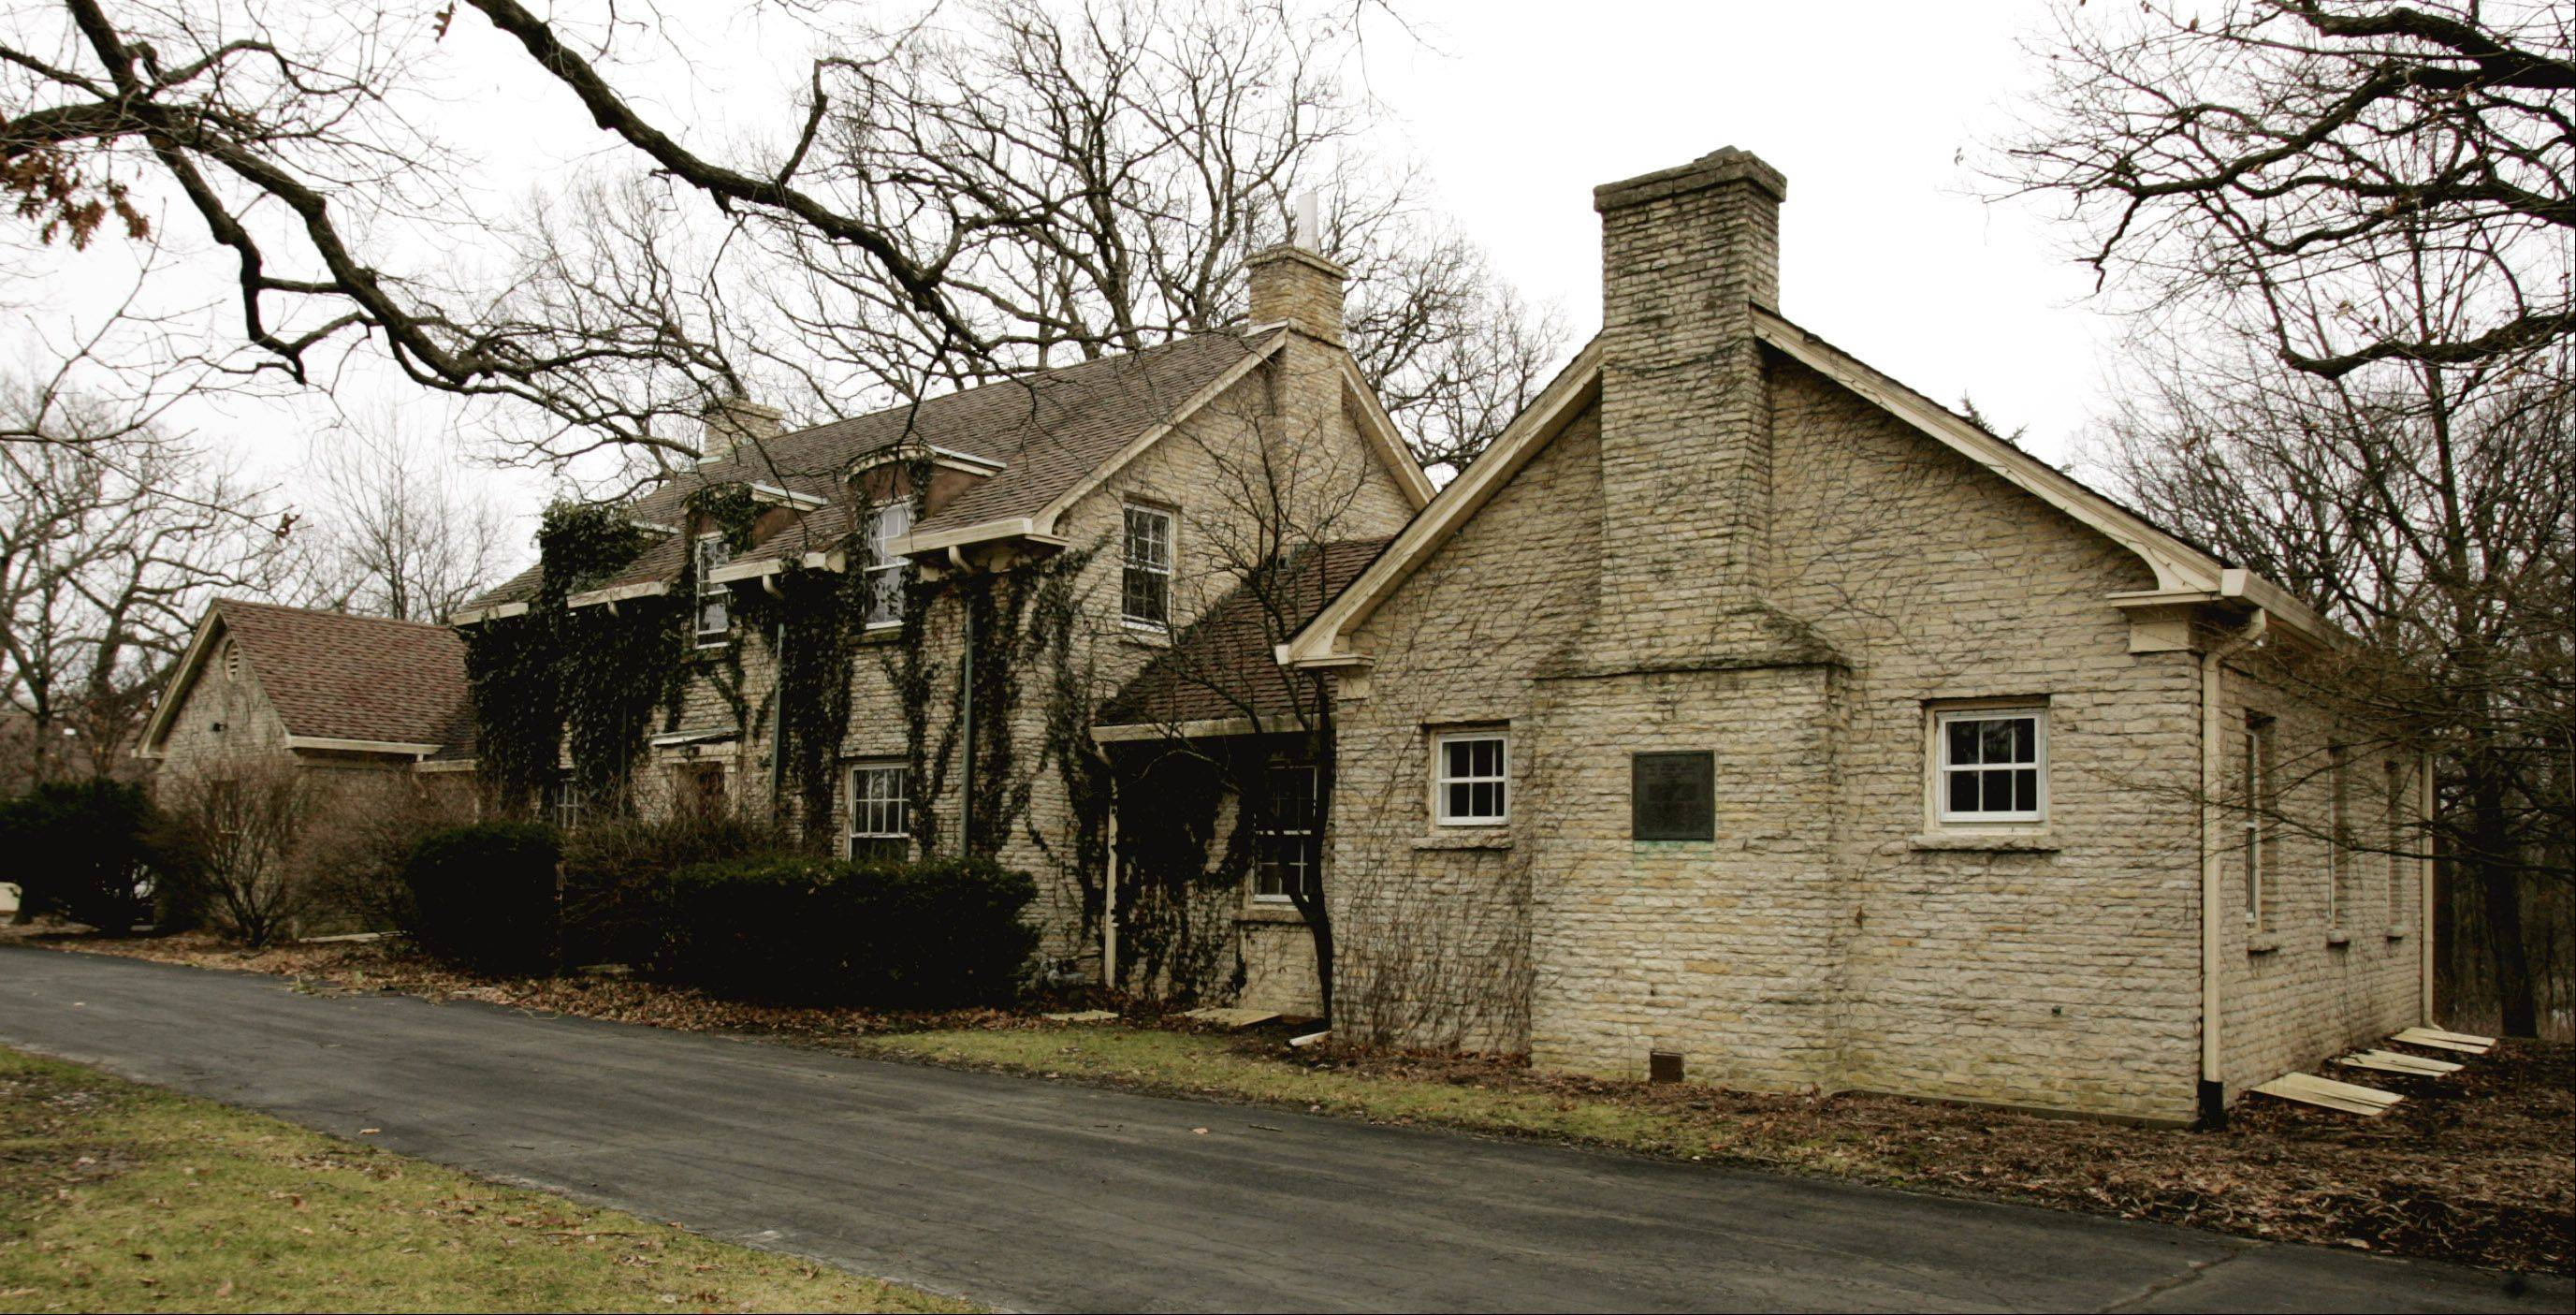 Local preservationists have been given six months to come up with a plan to restore a landmark house at Churchill Woods Forest Preserve near Glen Ellyn.